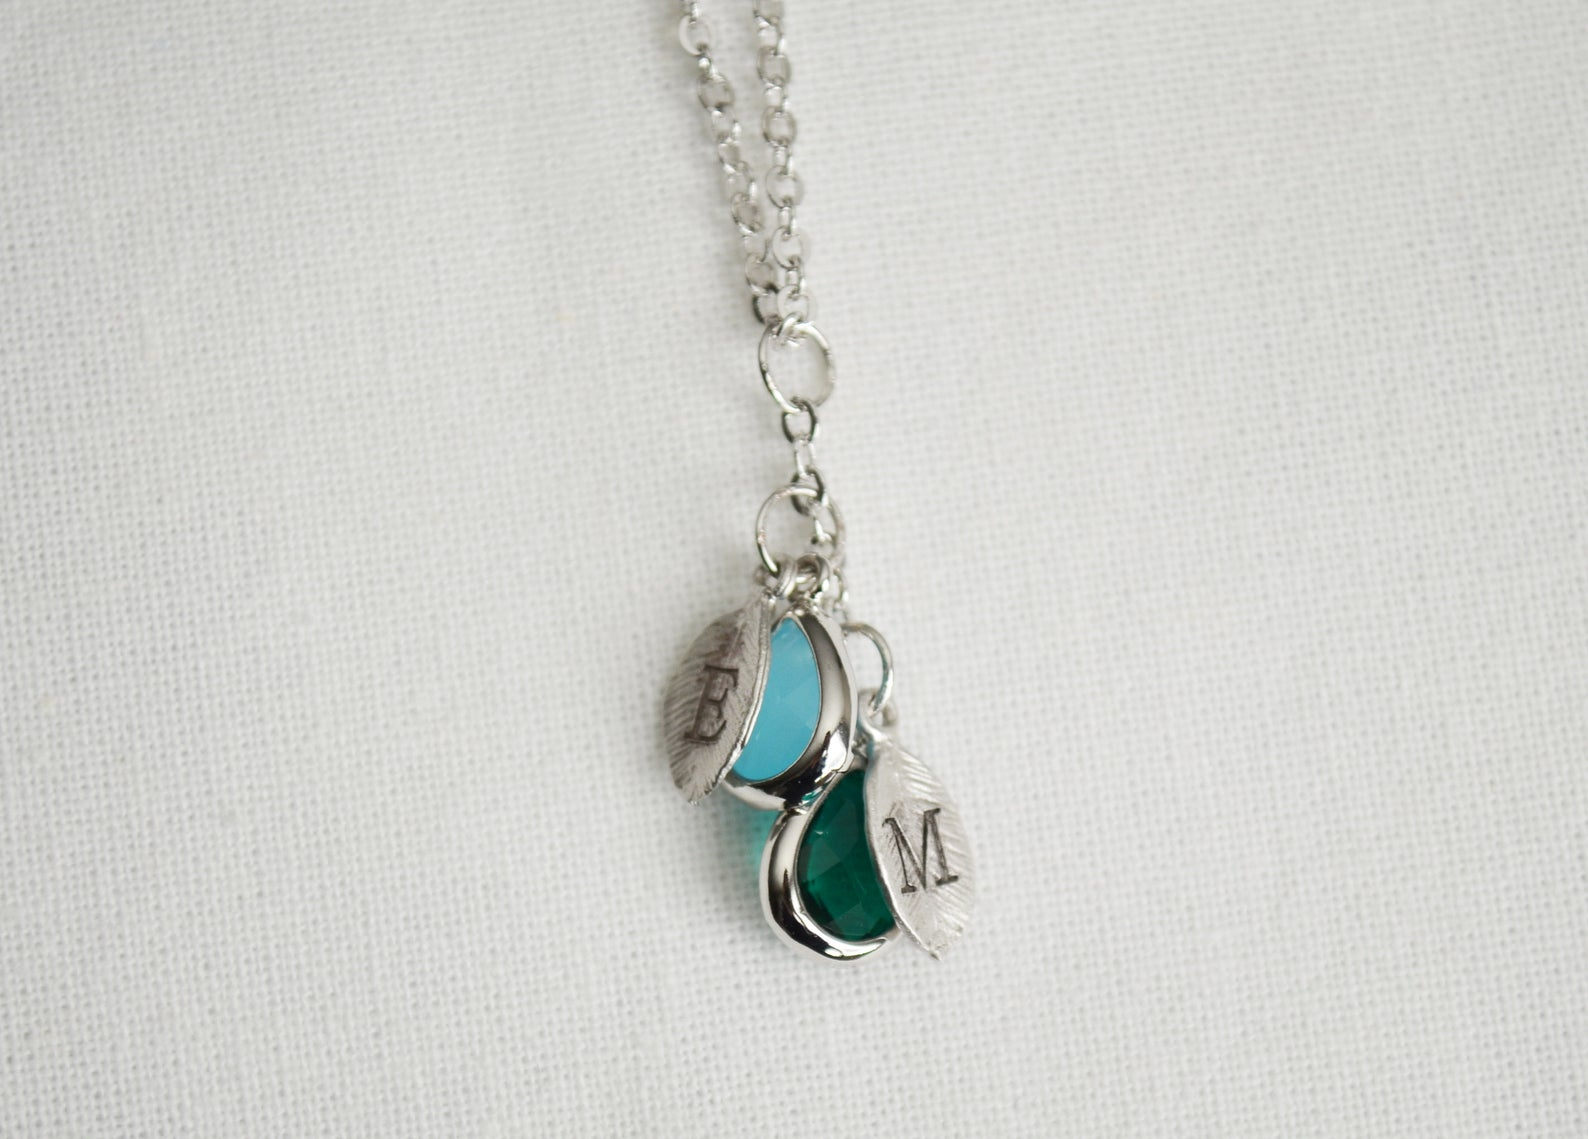 Personalized mom necklace with birthstone initial necklace birthday gifts for mom gift for grandma necklace custom family tree necklace mom